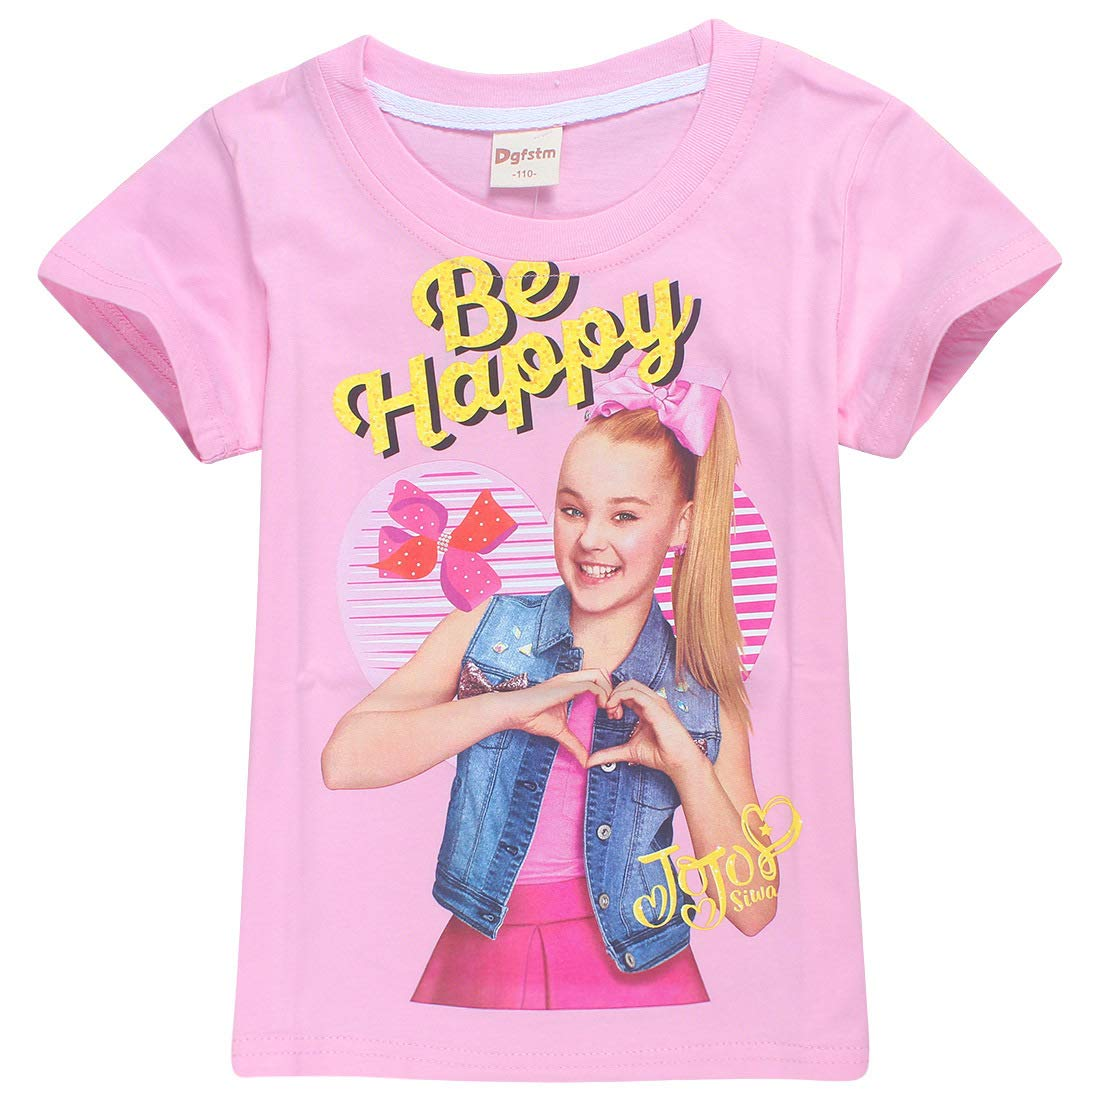 JoJo Siwa Short T-Shirt Girls Short Sleeve Tops Tees-Made in 100% Cotton